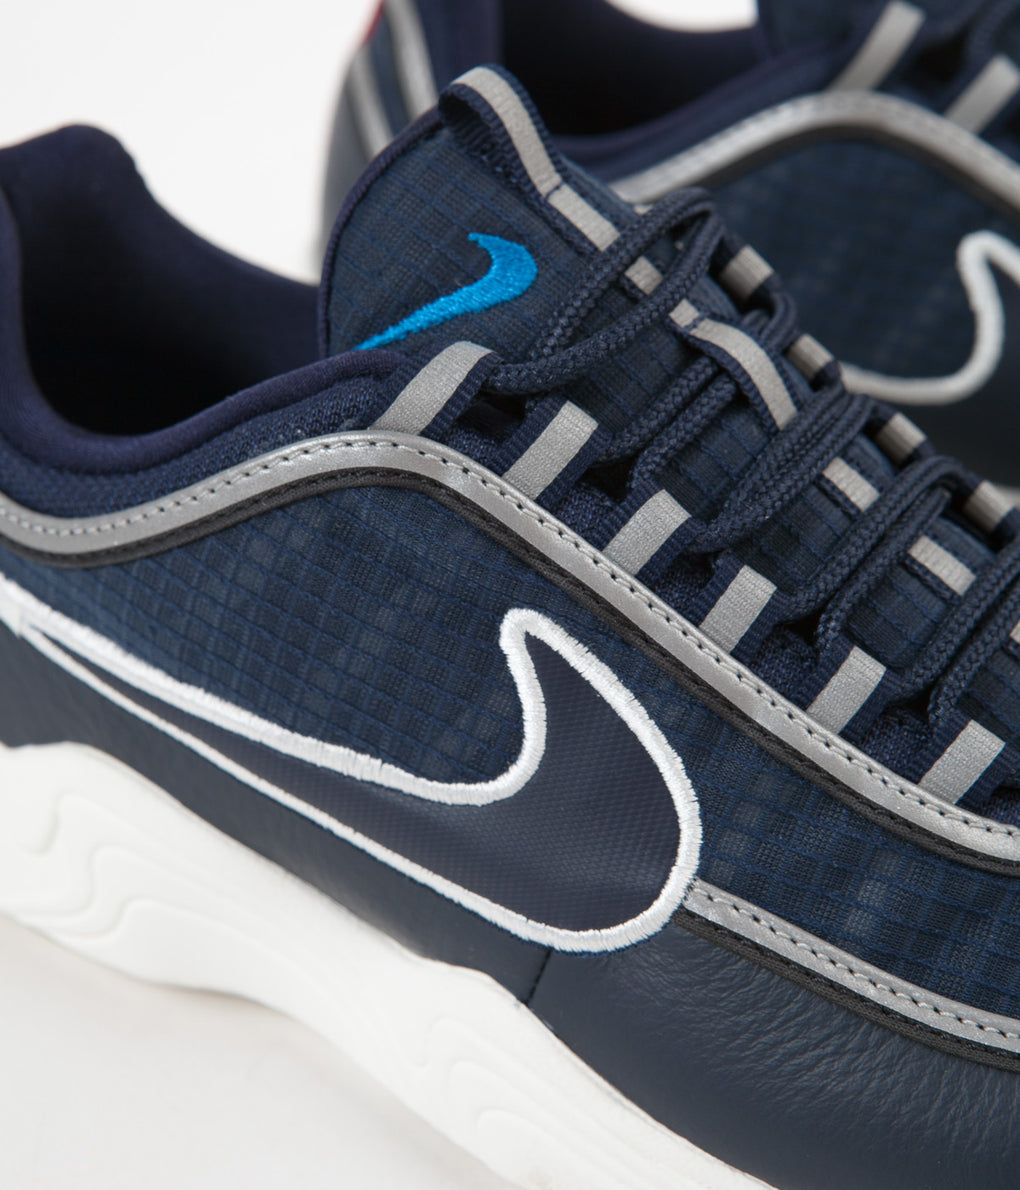 Nike Air Zoom Spiridon SE Shoes -  Obsidian / Sail - Blue Nebula - Dark Grey